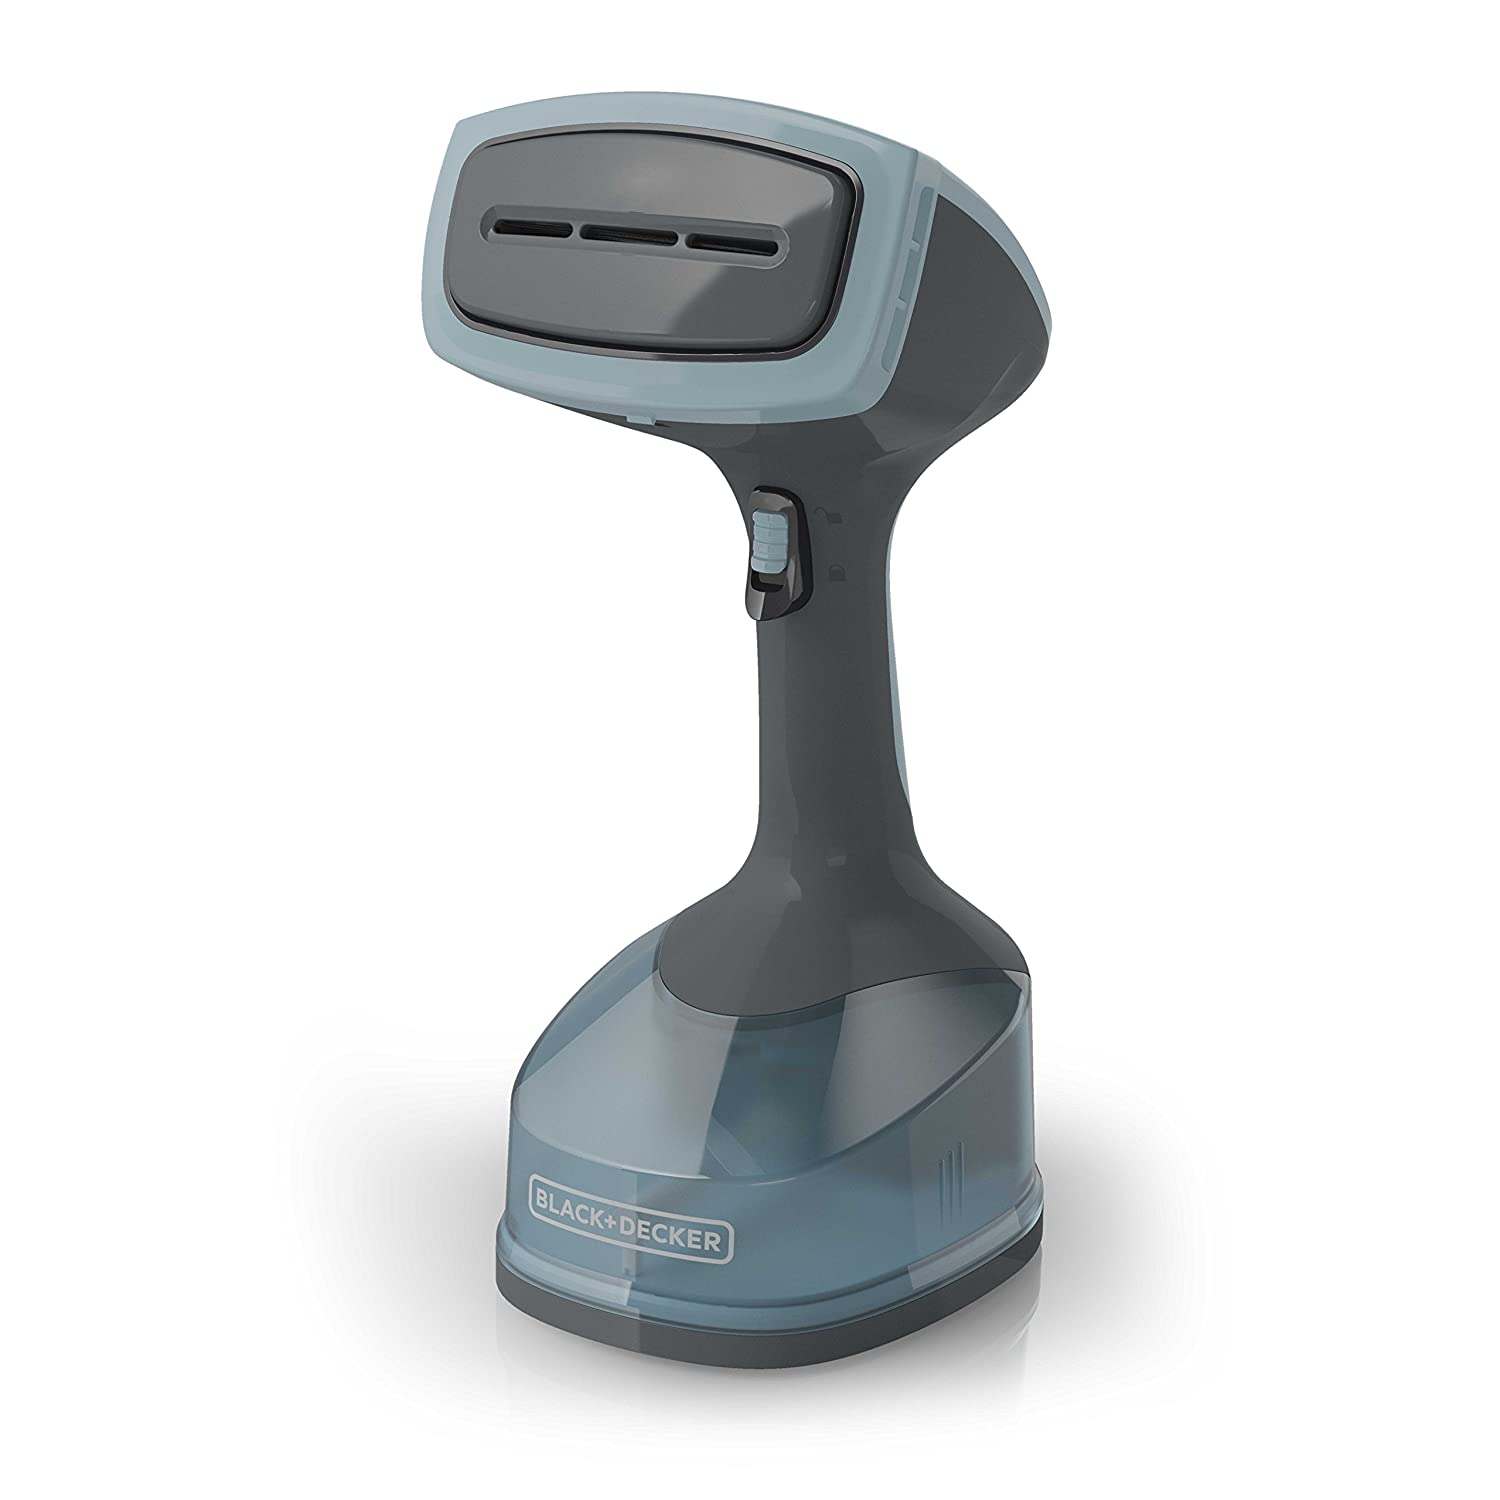 BLACK+DECKER Advanced Handheld Garment / Fabric Steamer with 3 Attachments, Gray/Blue, HGS200